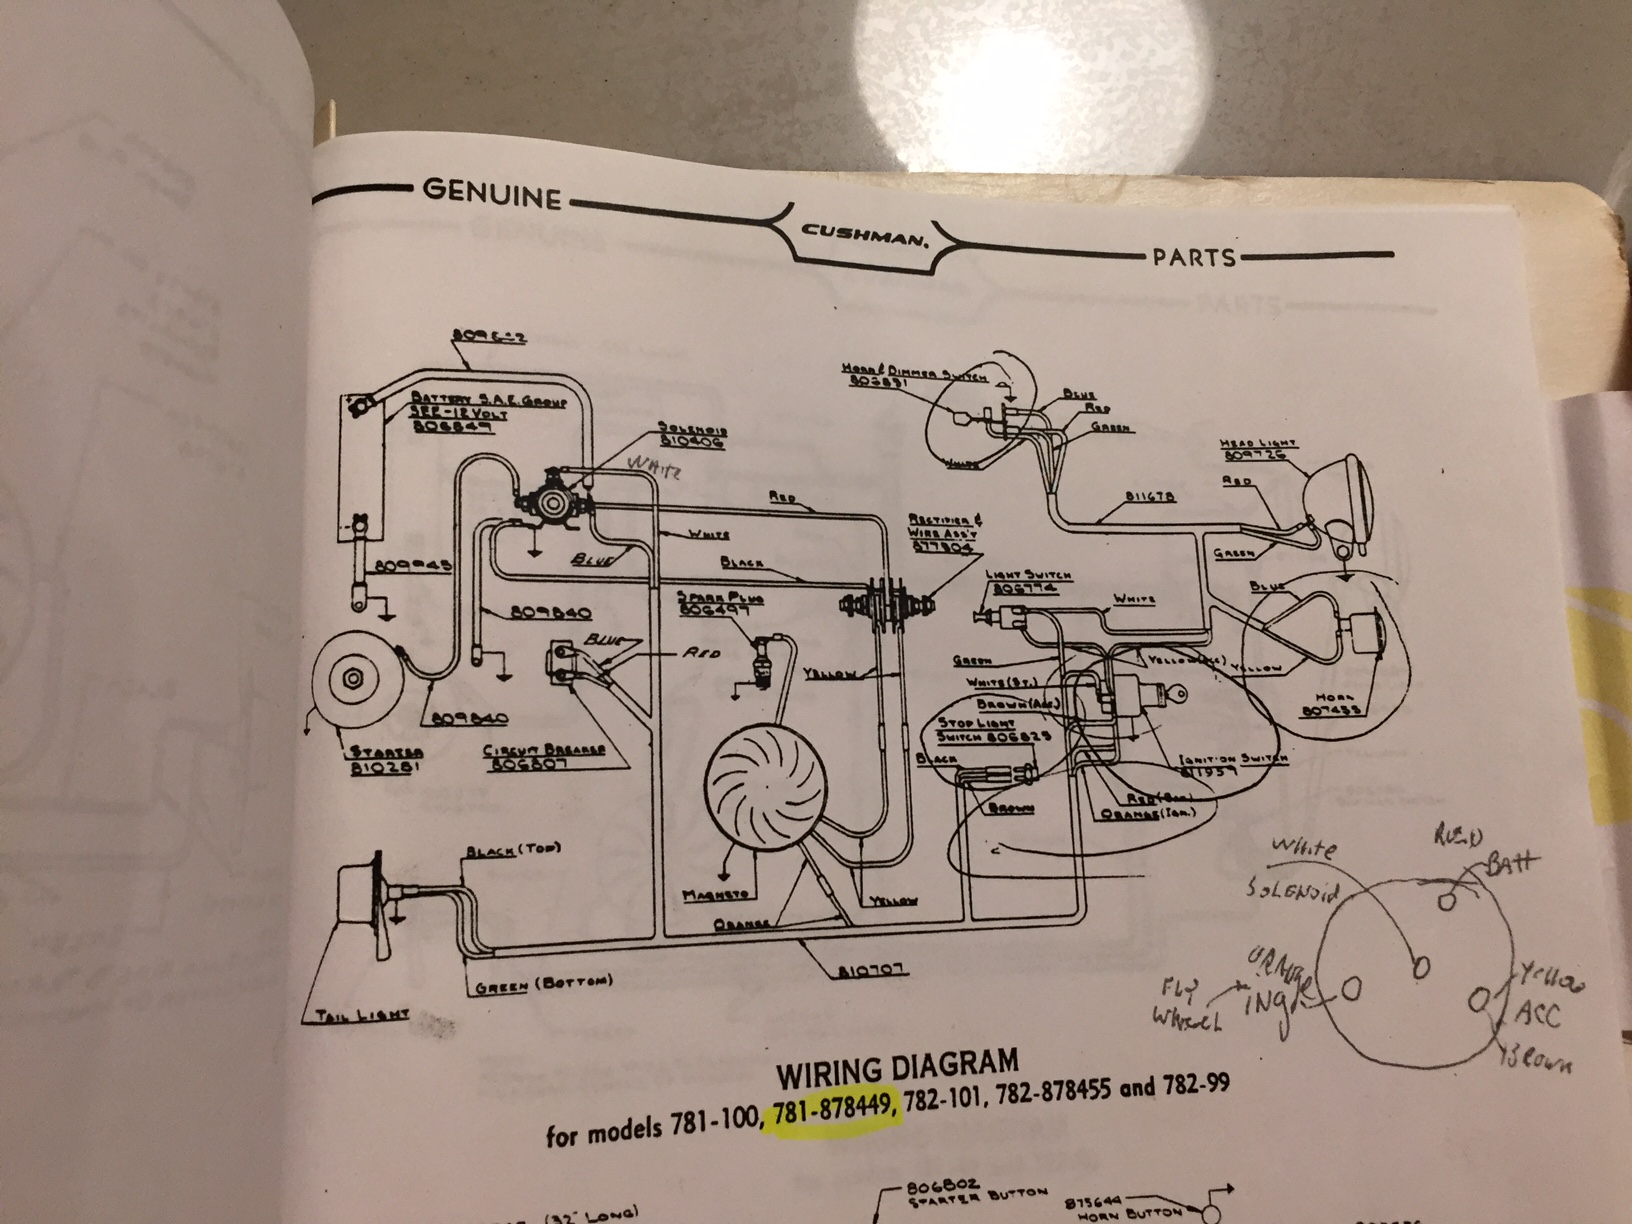 Cushman Truckster Wiring Diagram The Types Of 1979 Ezgo Golf Cart Gas Engine 59 Reality Help Technical Rh Forums Aaca Org 834218